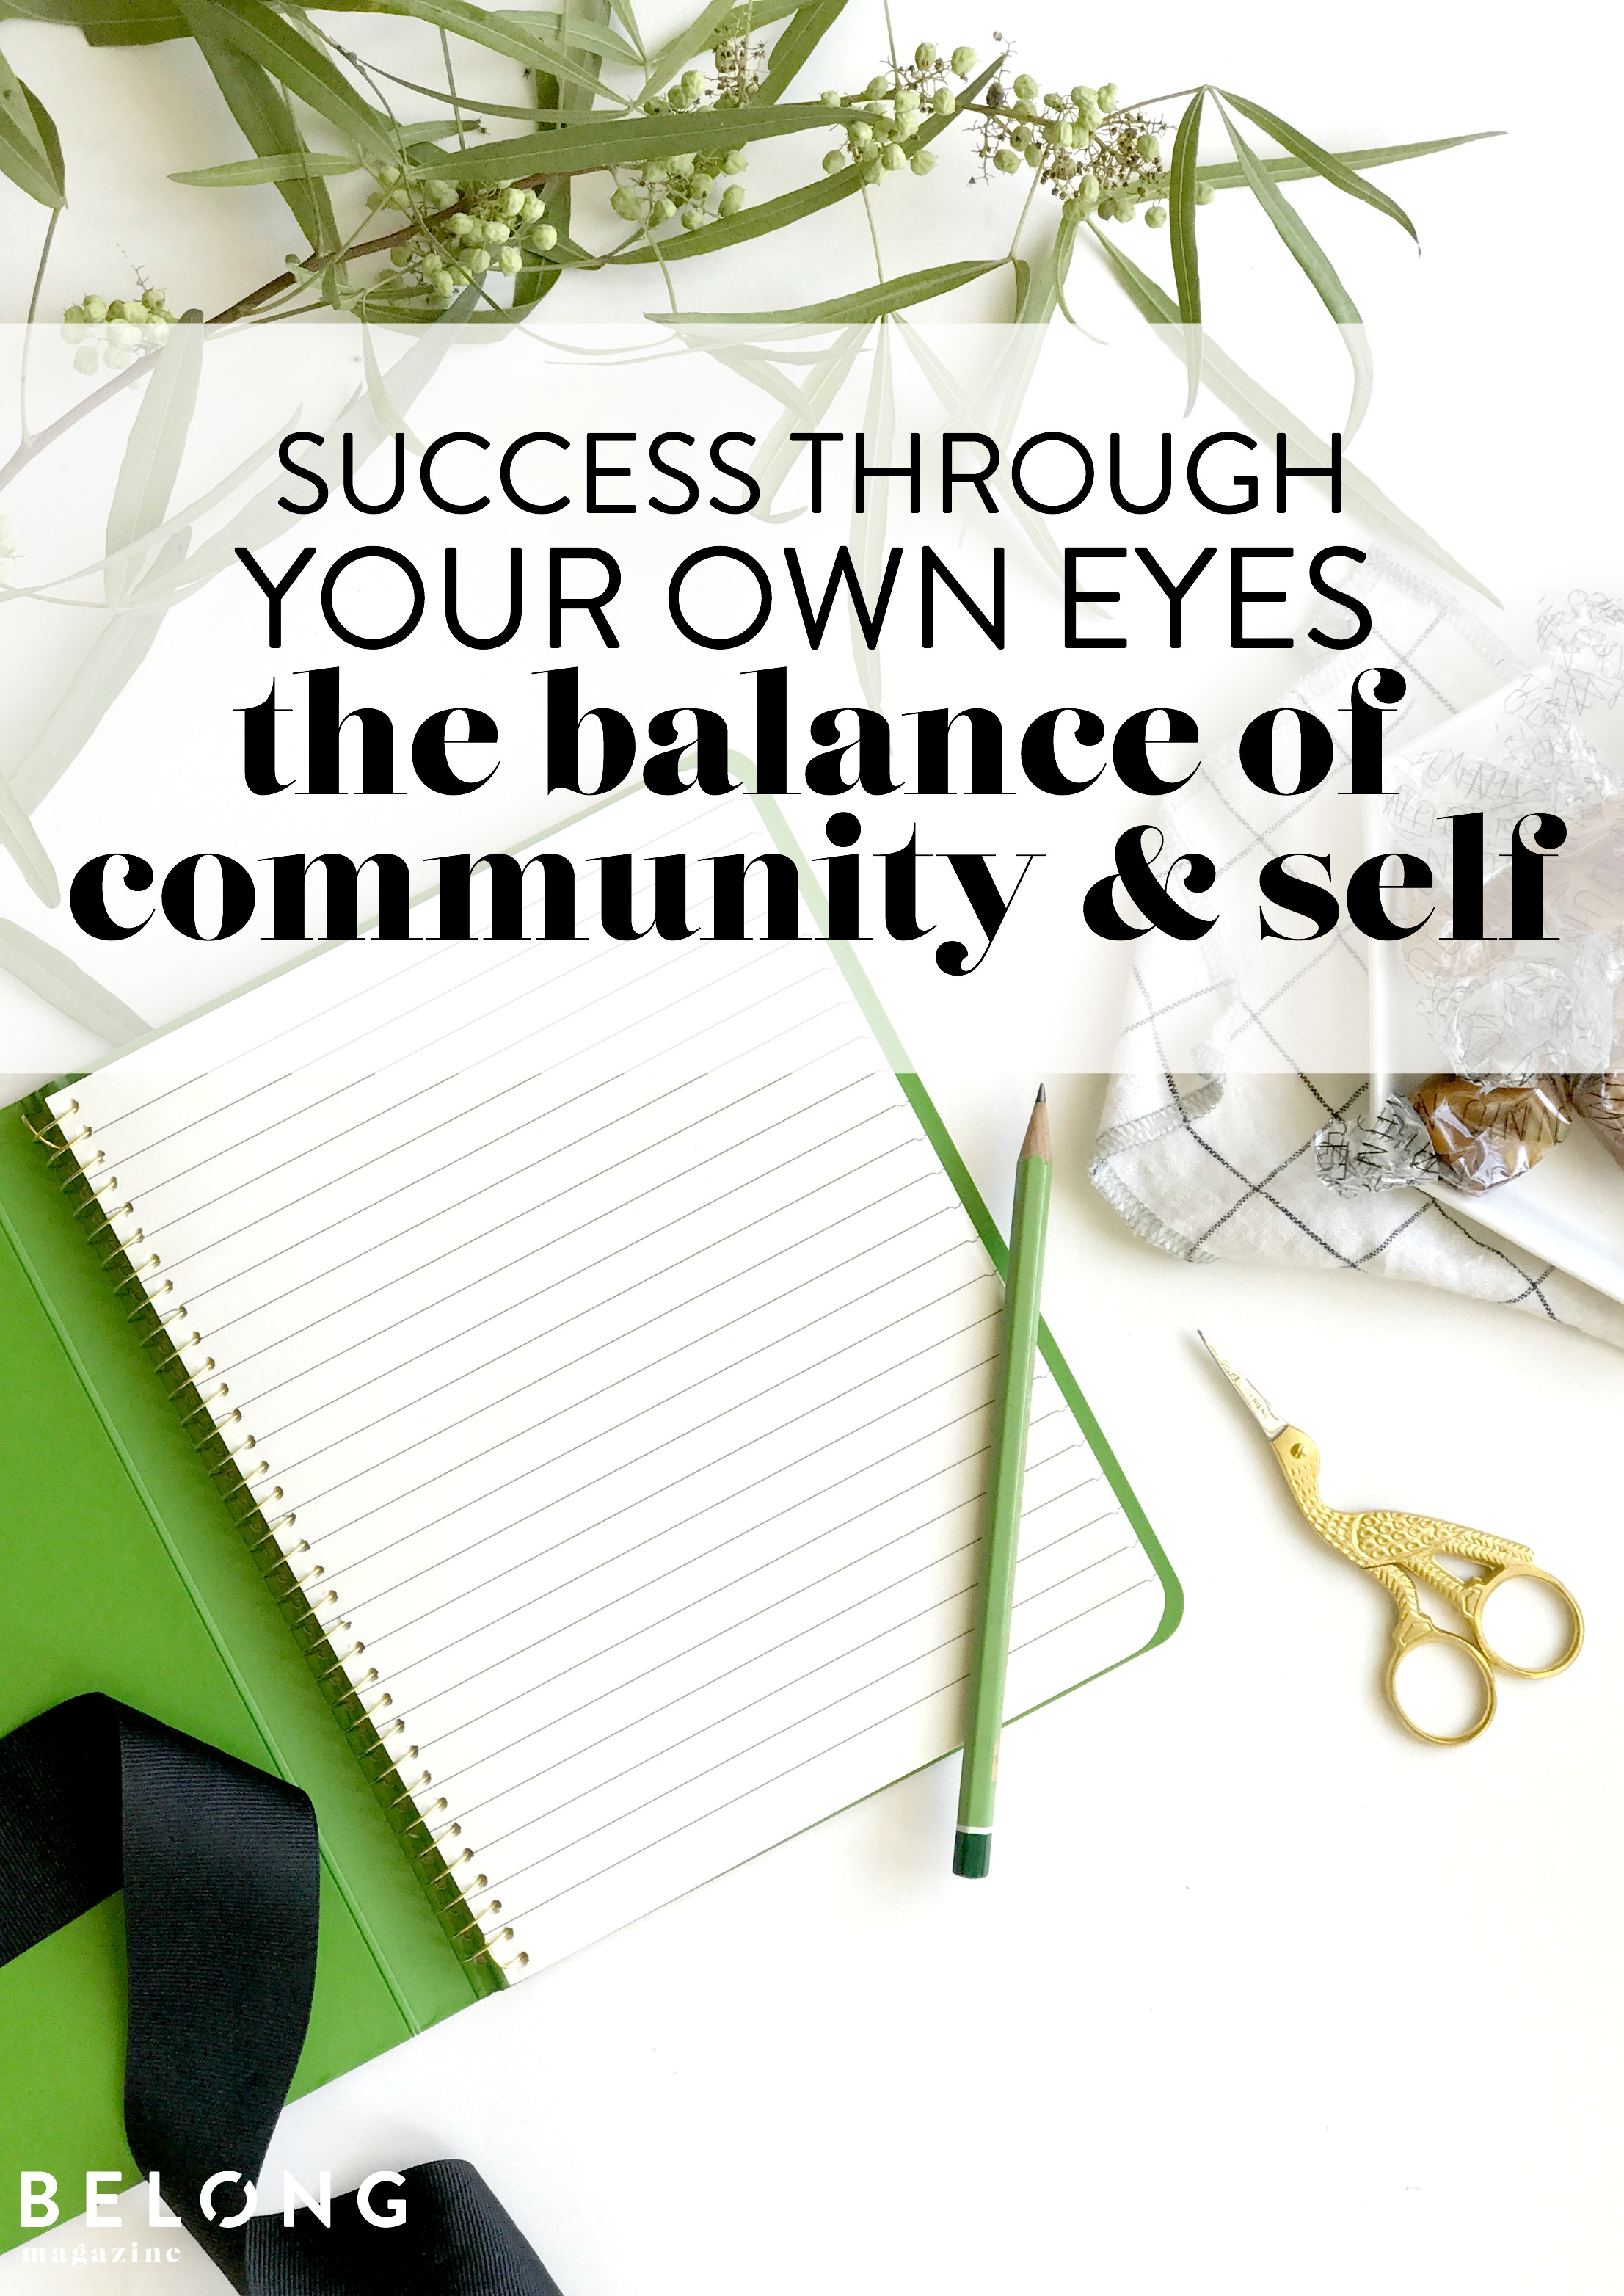 success through your own eyes - the balance of community and self by Mary Godier on the Belong Magazine Blog